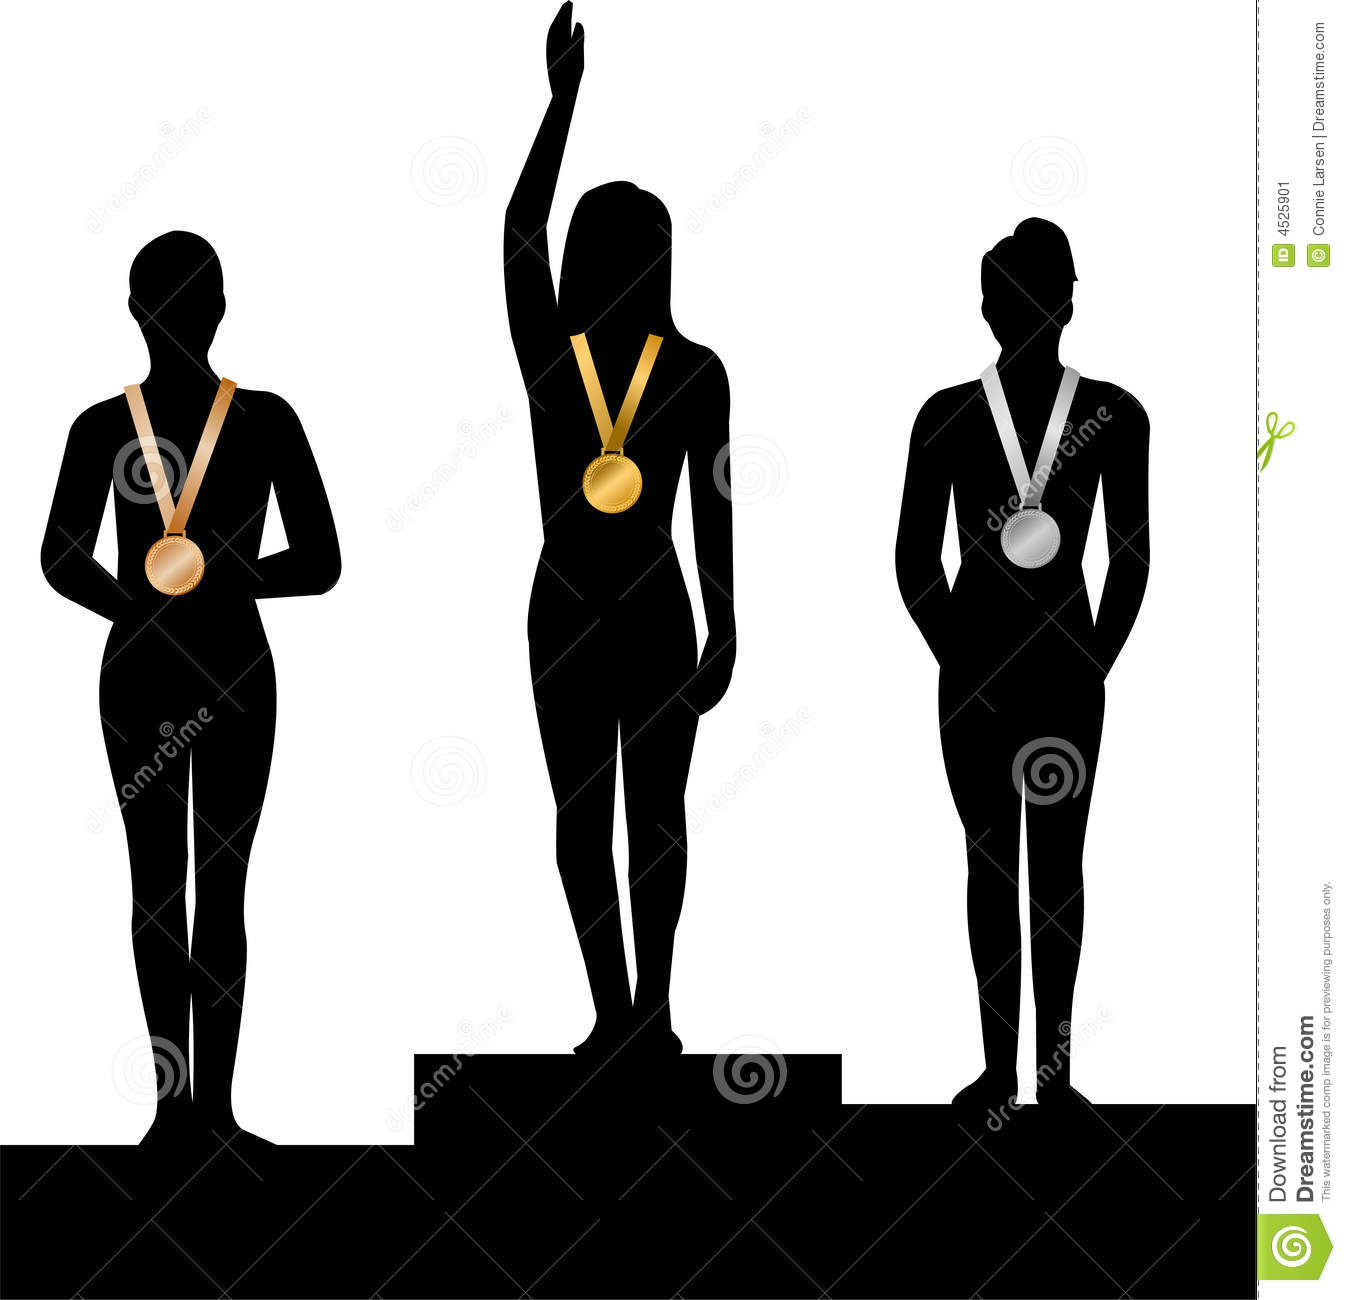 Illustration of a podium, with three medal winners...gold, silver and ...